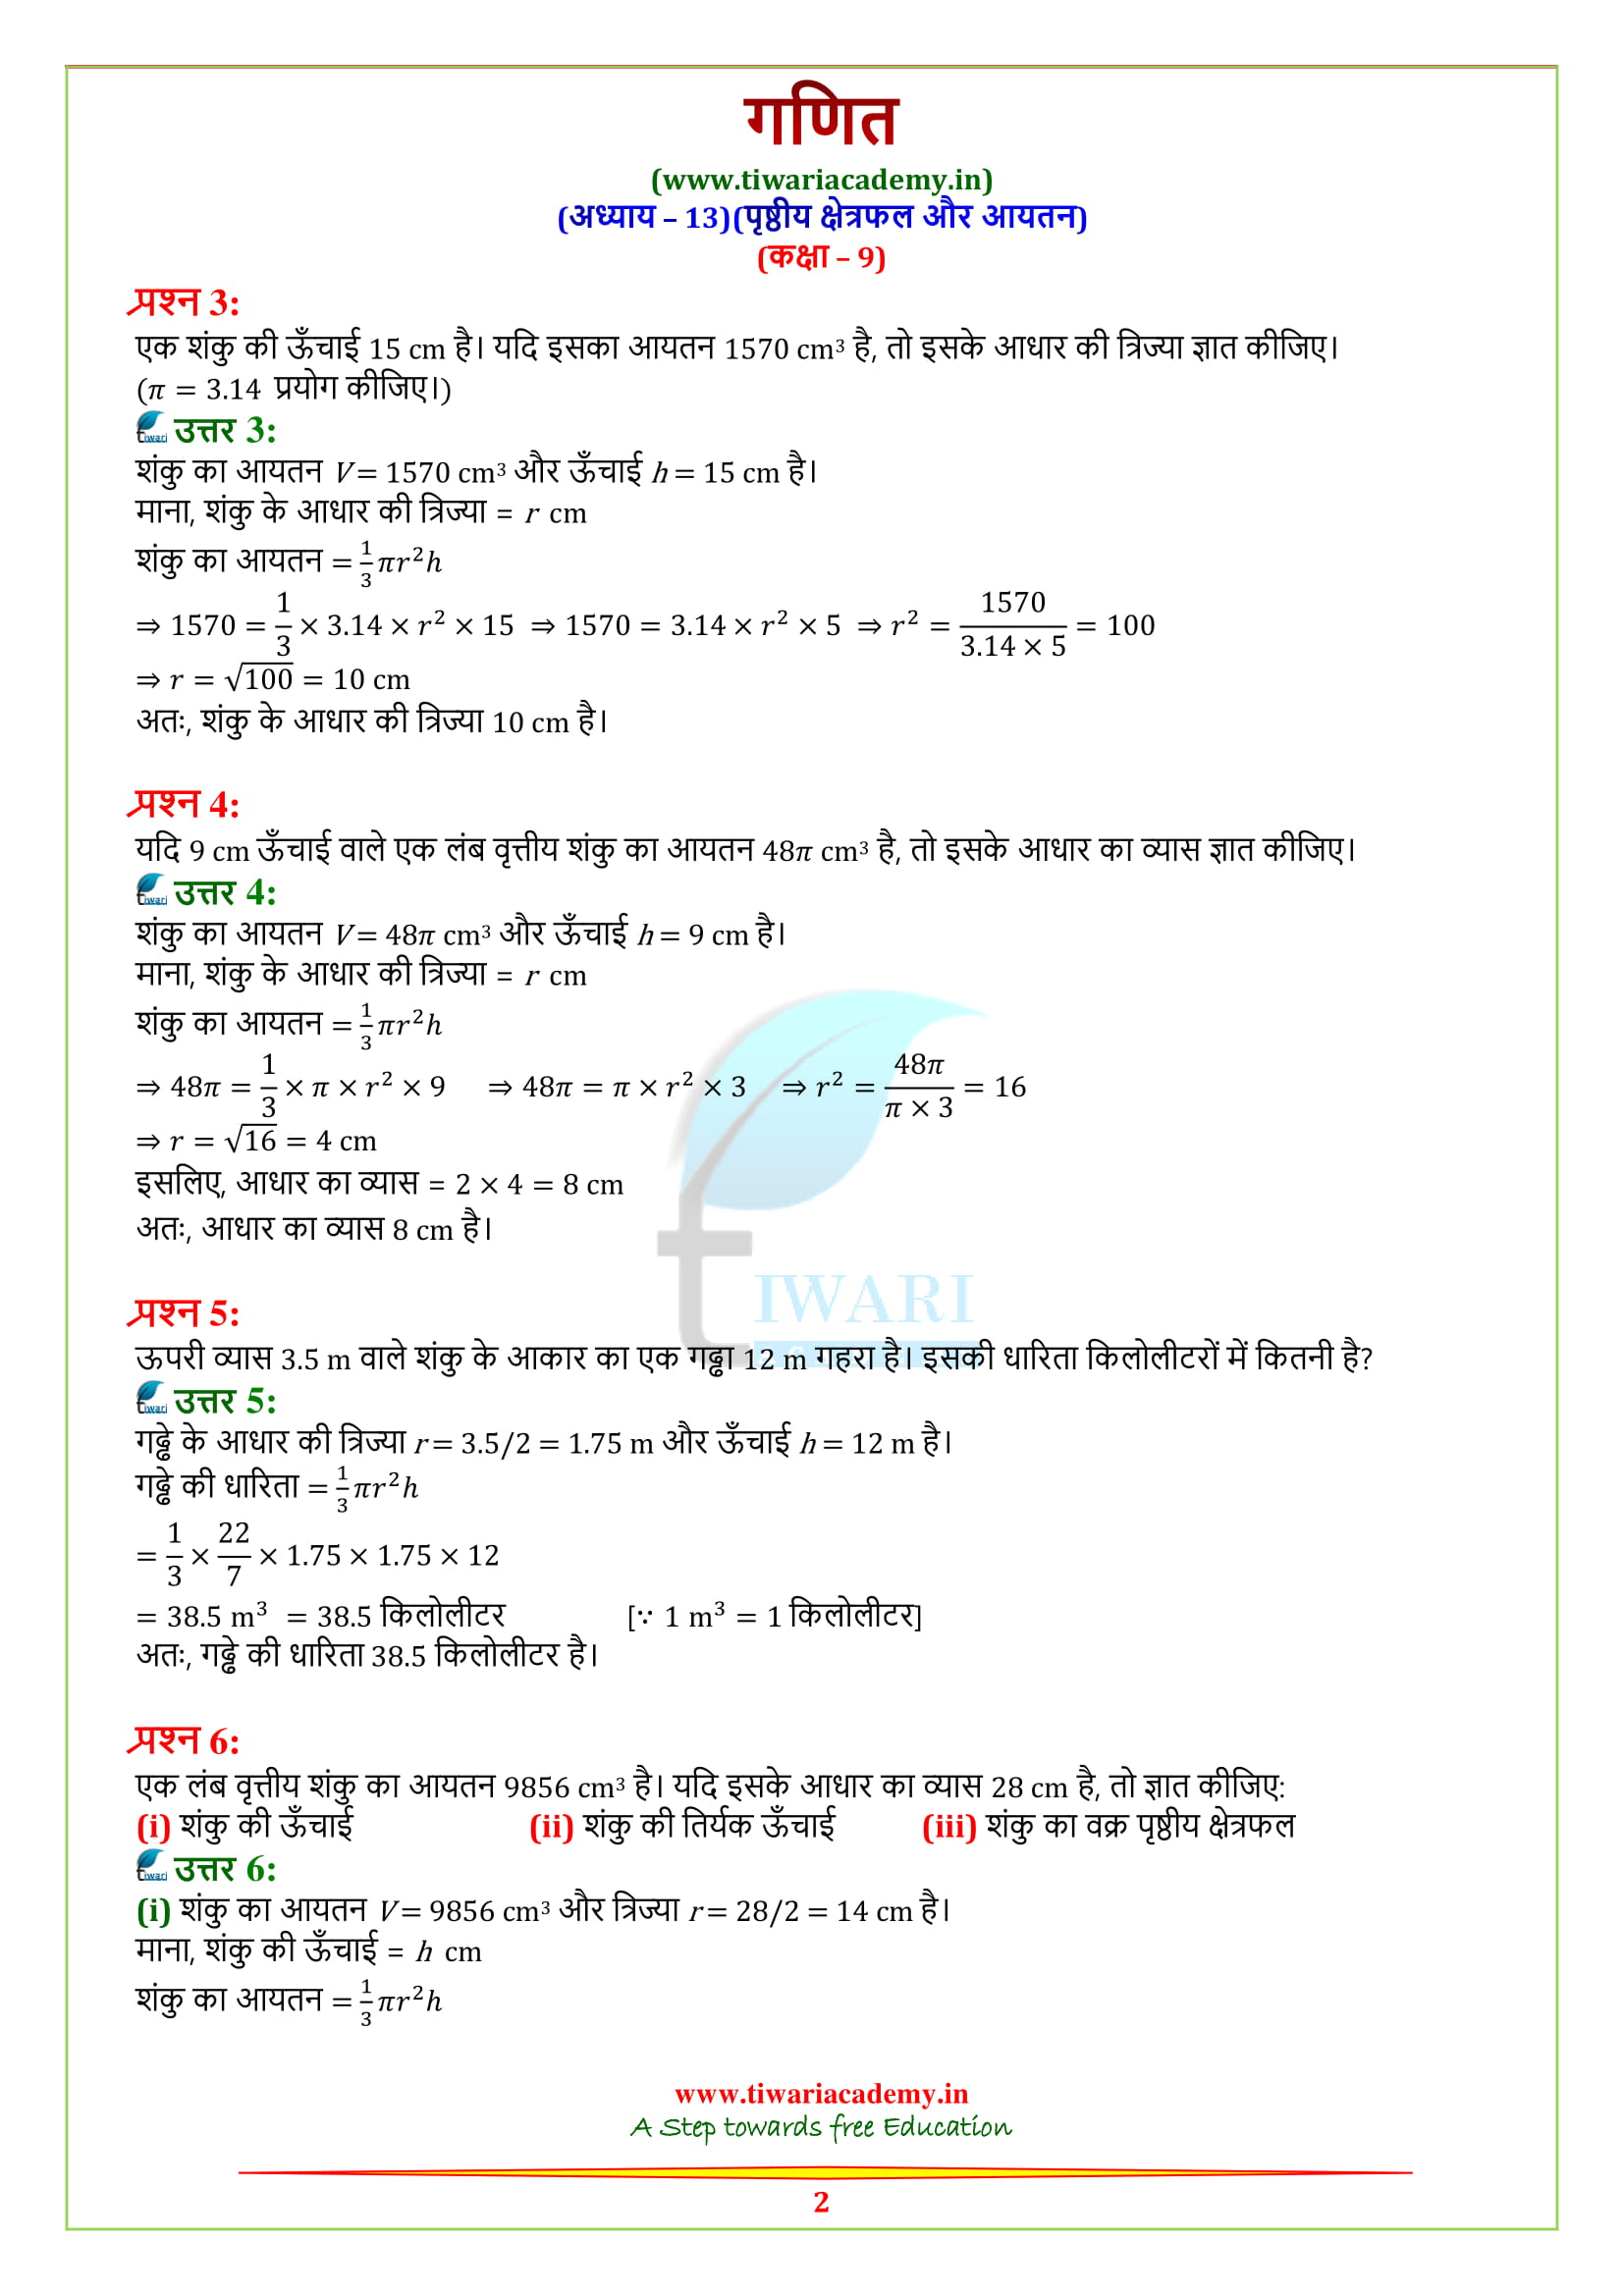 NCERT Solutions for class 9 Maths Exercise 13.7 updated for mp, up board 2018-19